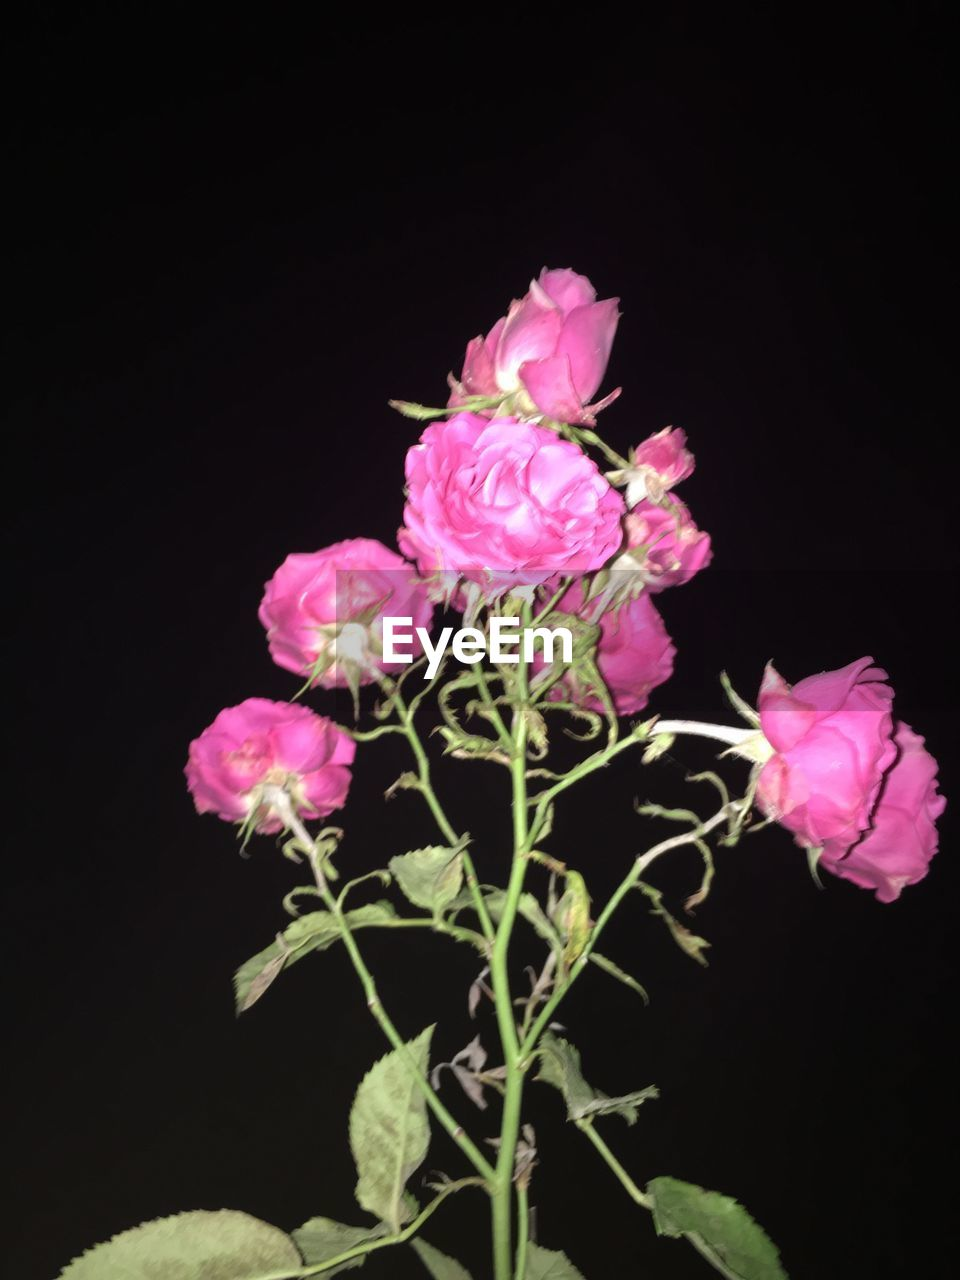 flower, petal, plant, growth, pink color, fragility, nature, black background, beauty in nature, no people, blooming, flower head, freshness, studio shot, night, close-up, outdoors